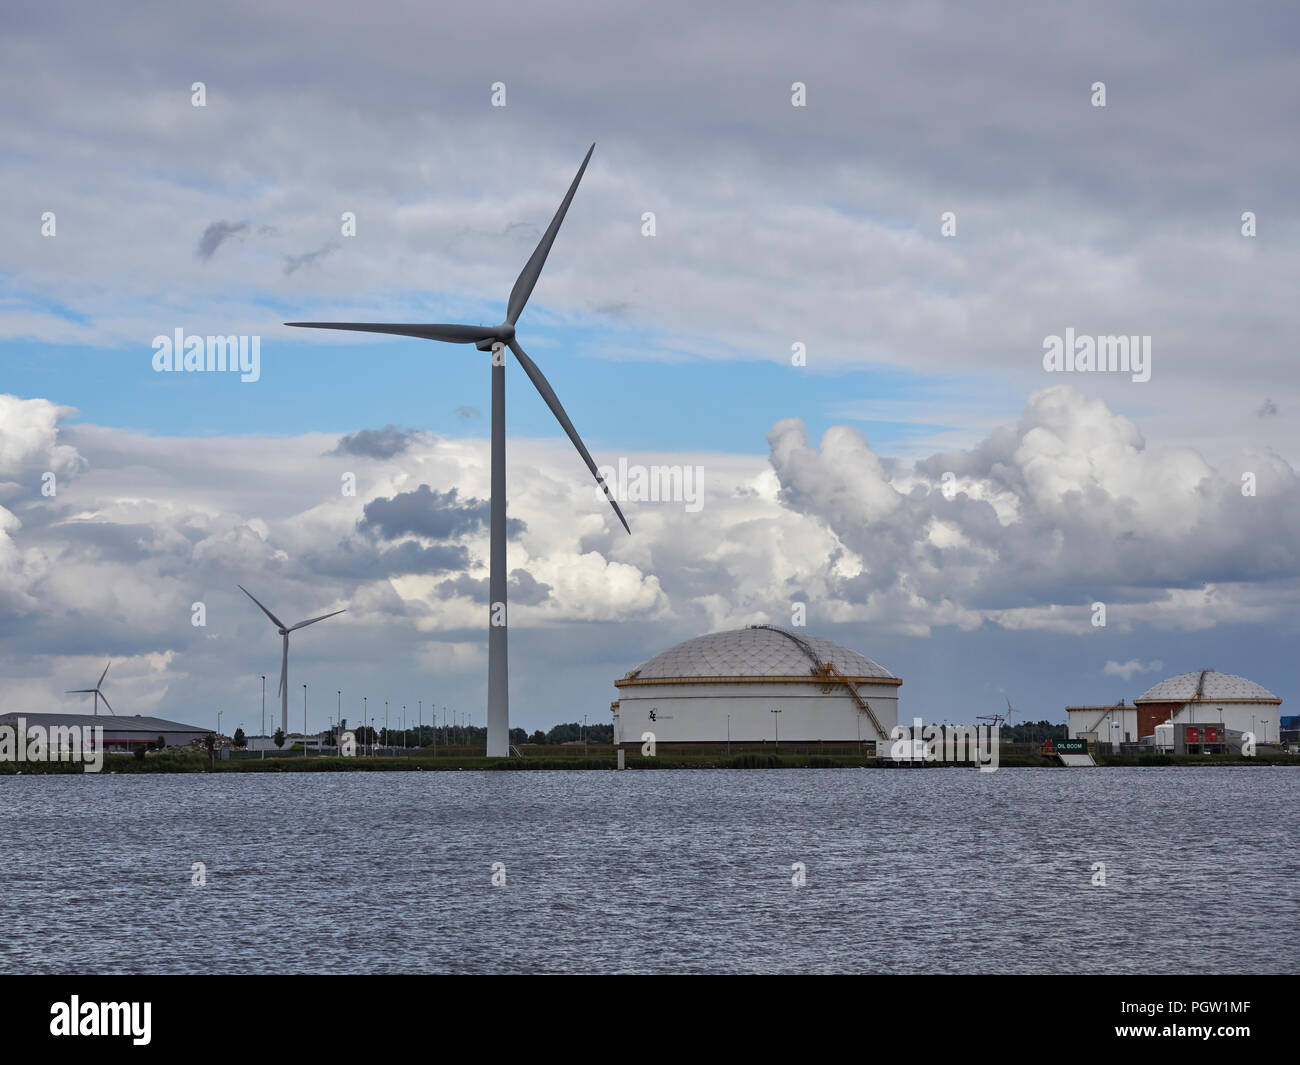 One of the many large Wind Turbines seen at the Container Port at Den Haag near Amsterdam in The Netherlands. - Stock Image